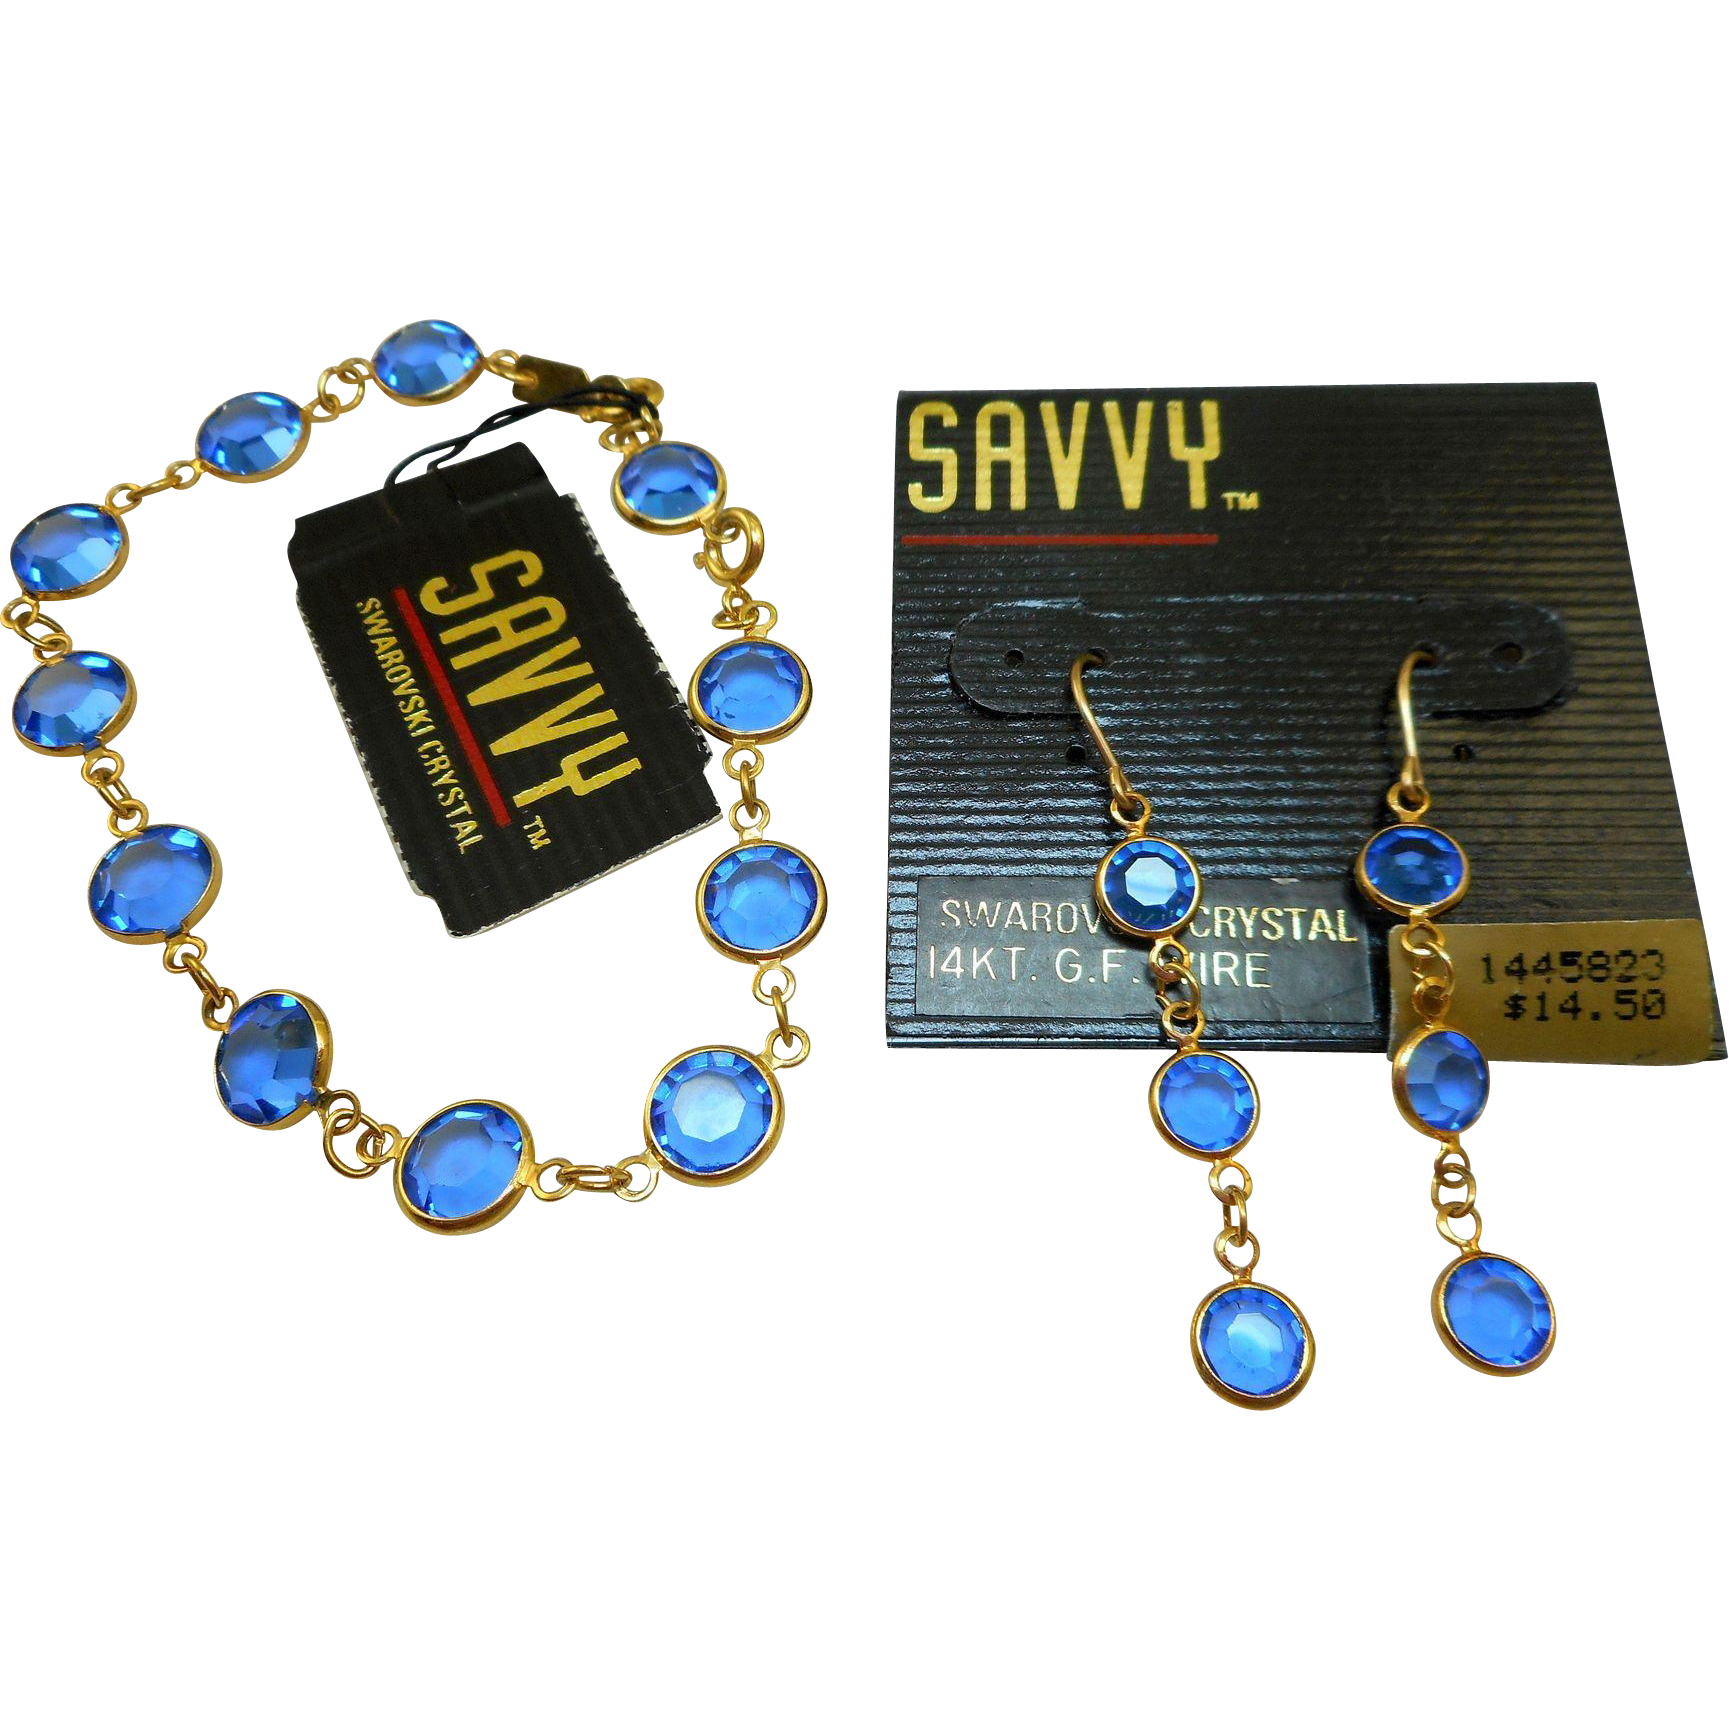 Swarovski Savvy Blue Glass Bracelet Earrings Set - MWT